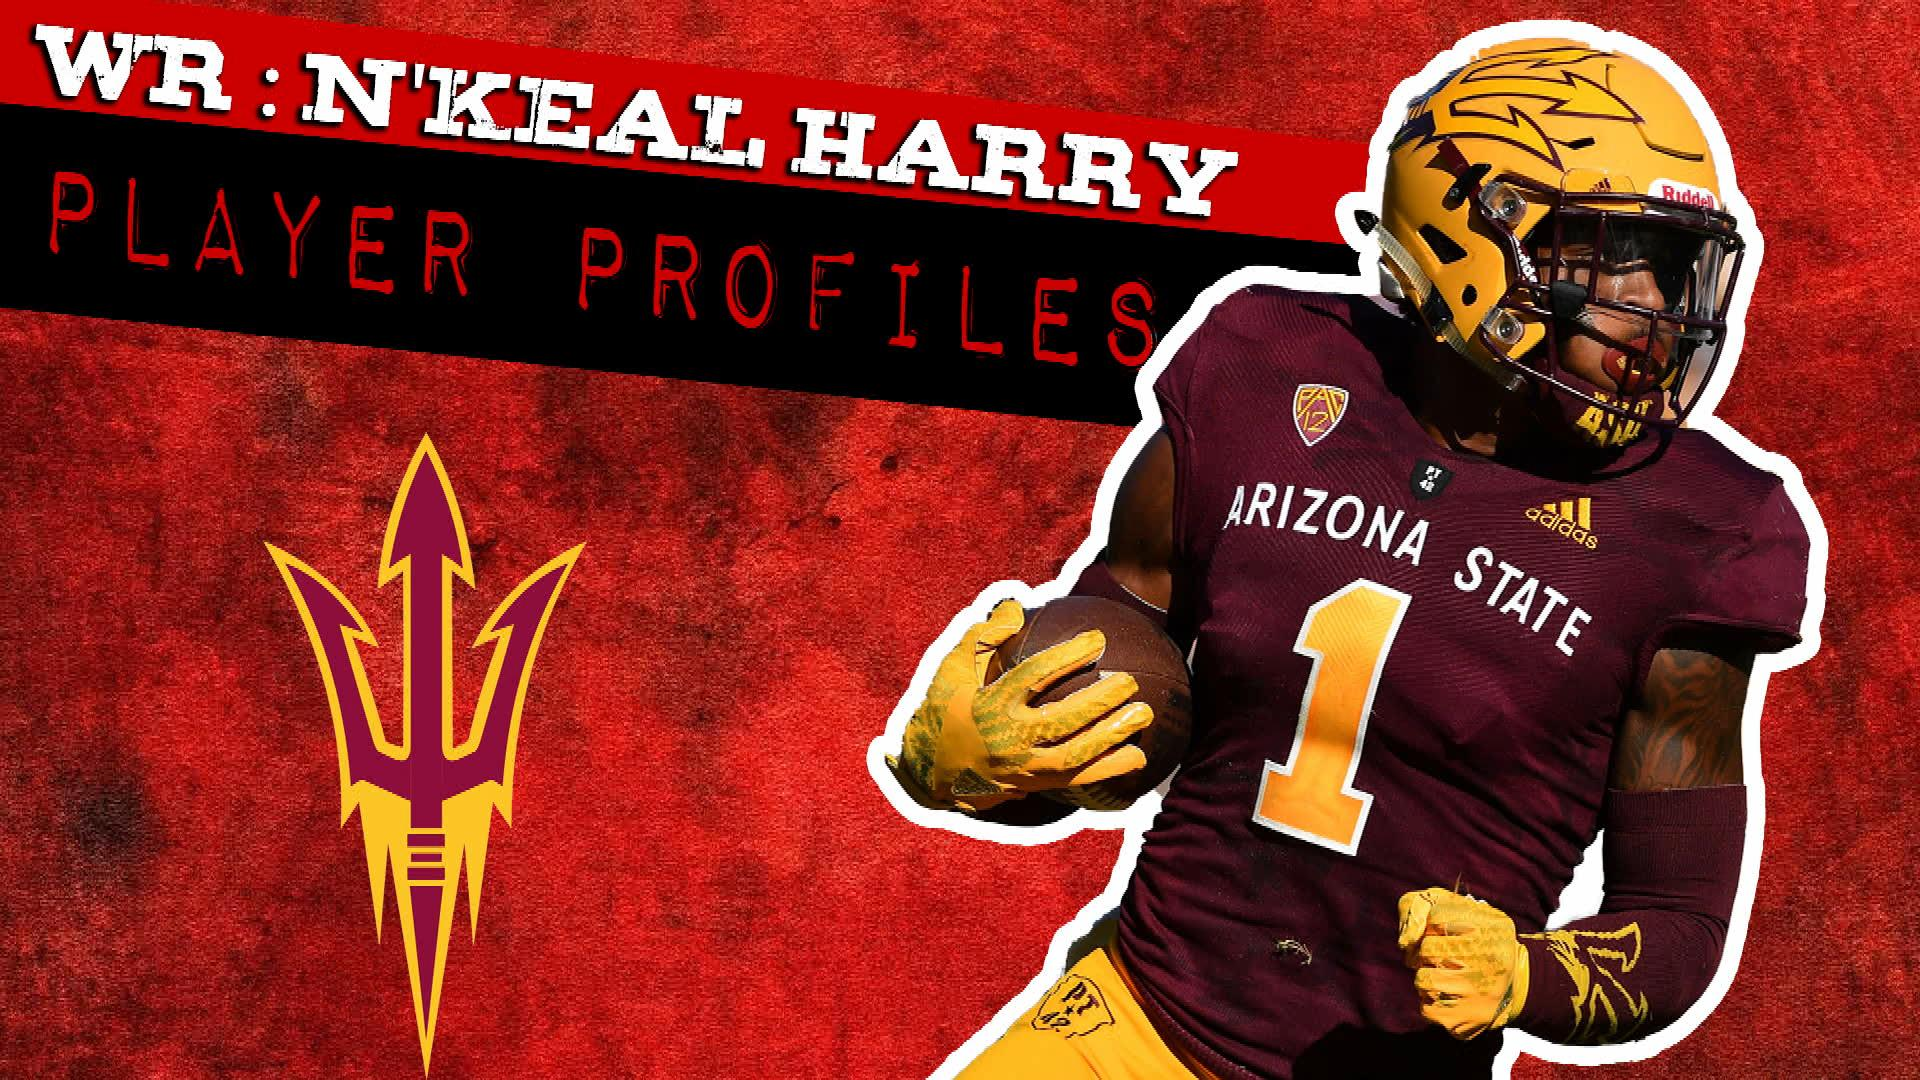 2019 NFL Draft profile: N'Keal Harry, Arizona State